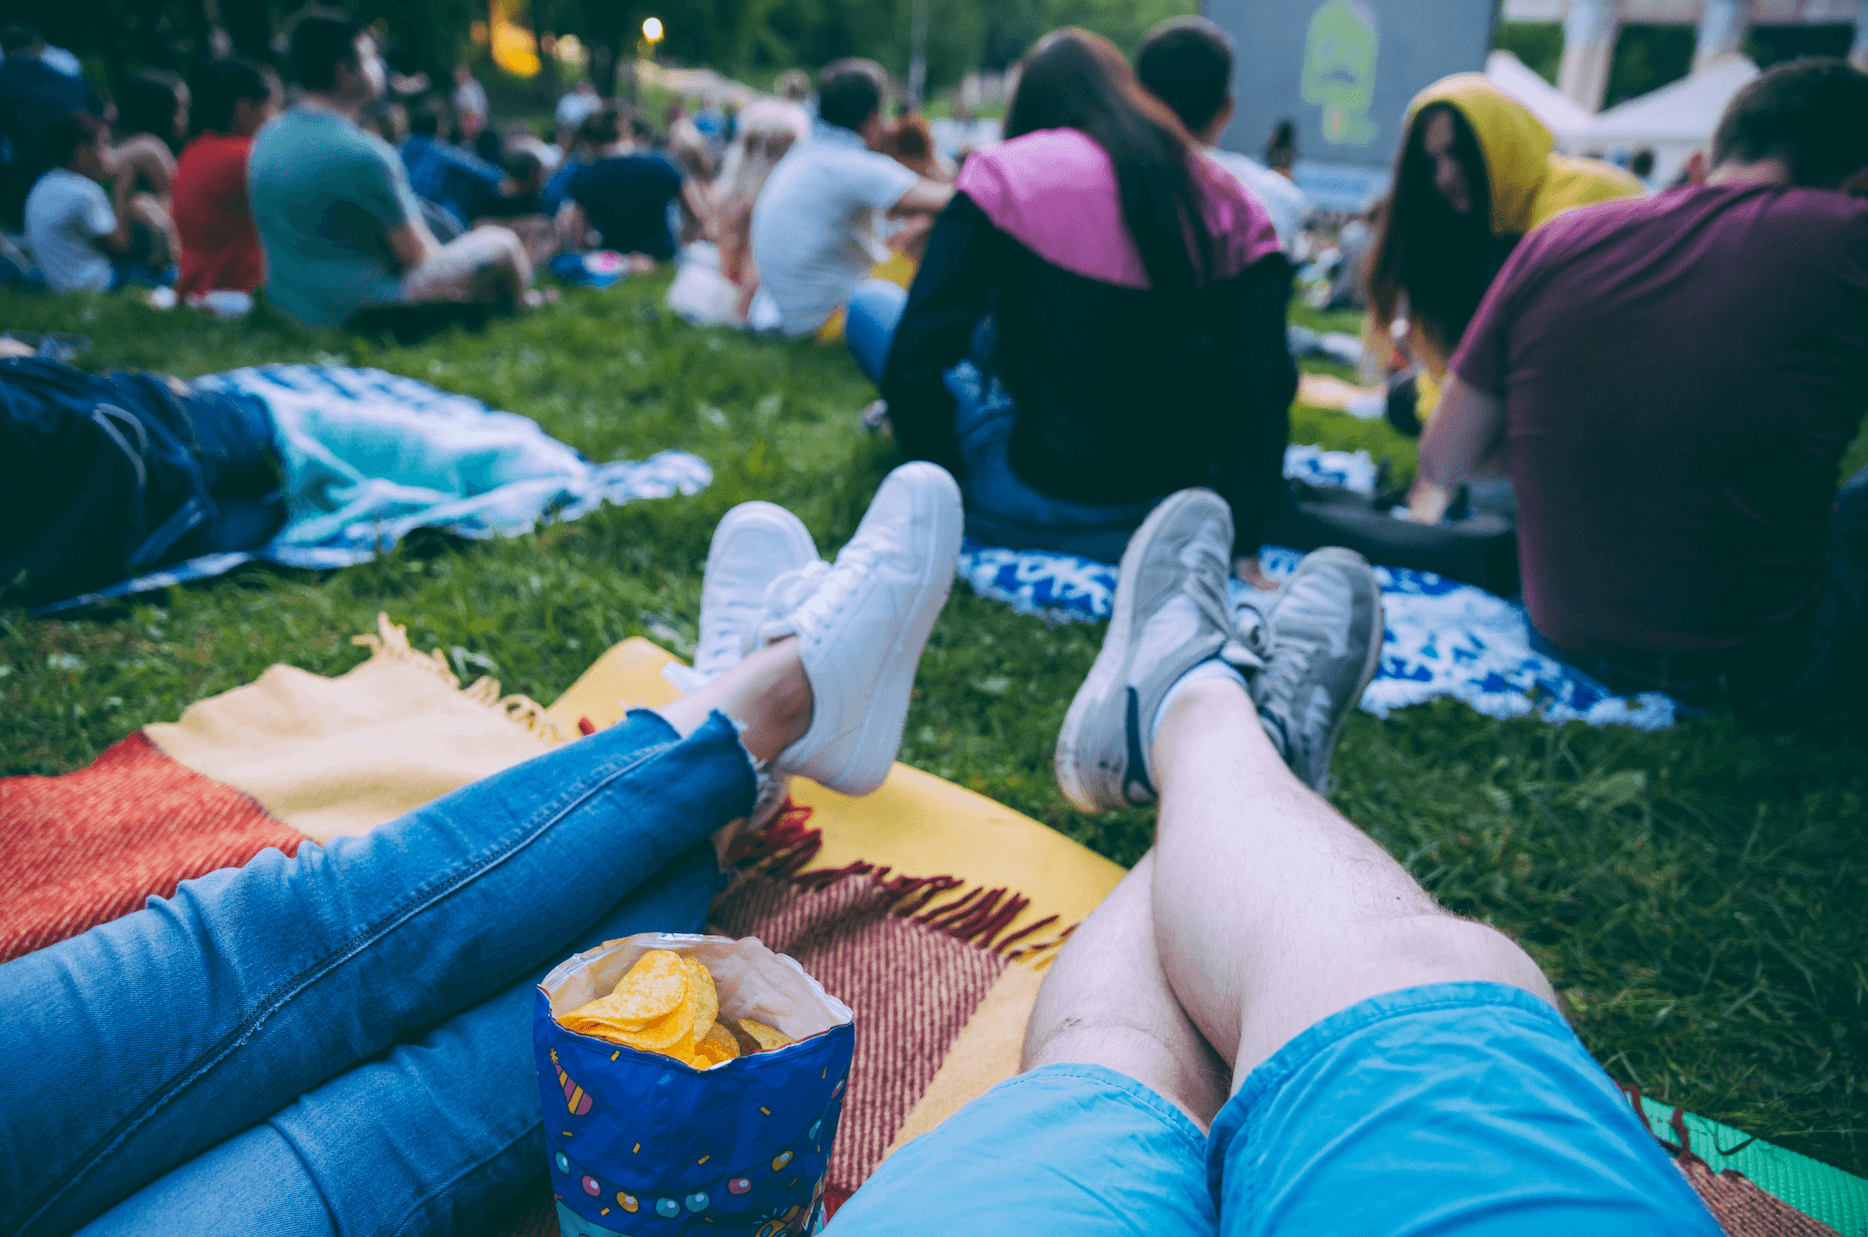 Baltimore's Outdoor Summer Flicks - blog post image